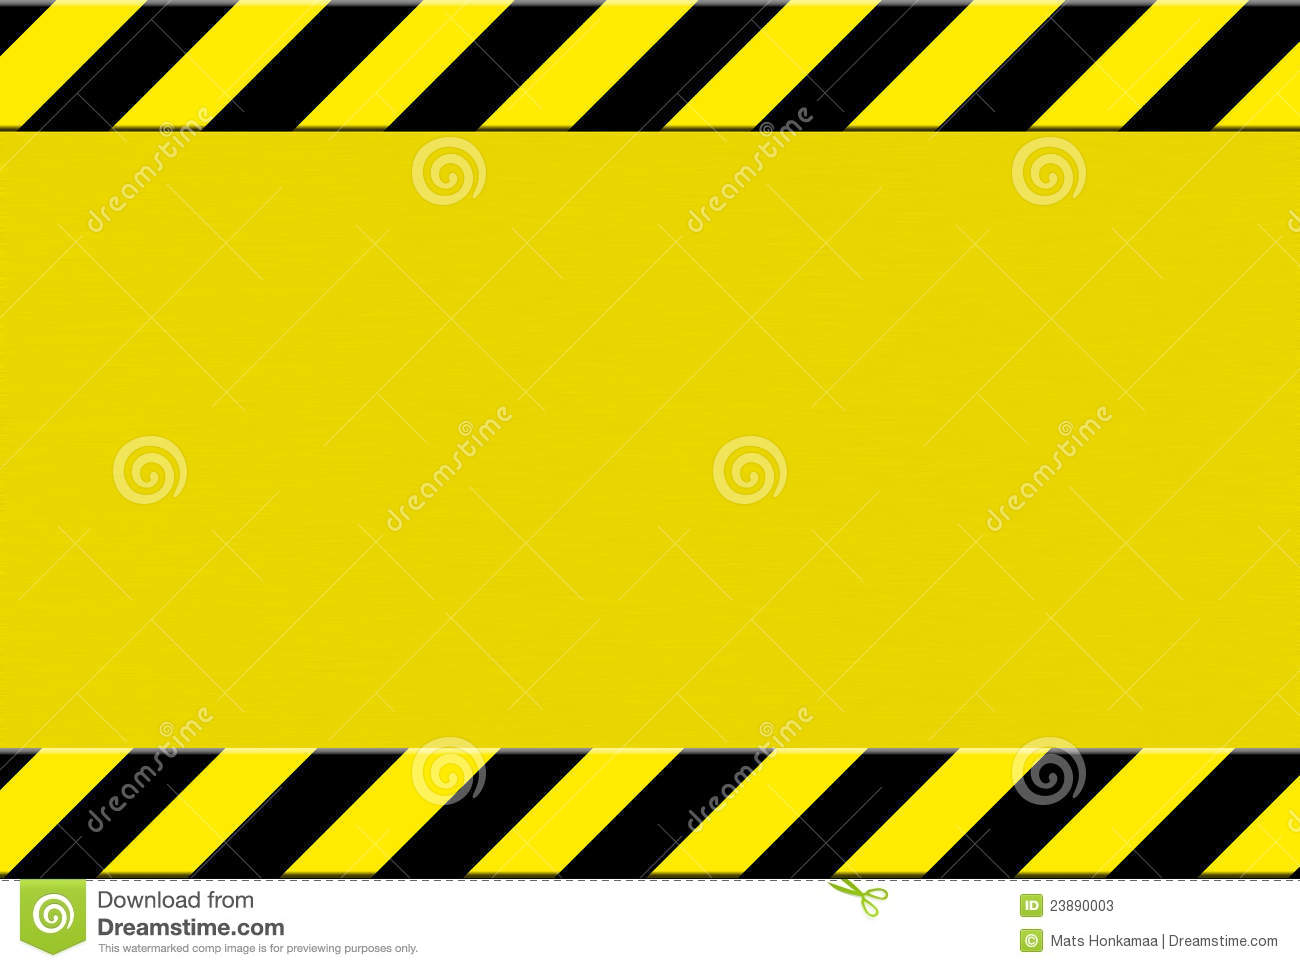 Construction Tape Border Clipart - Clipart Kid